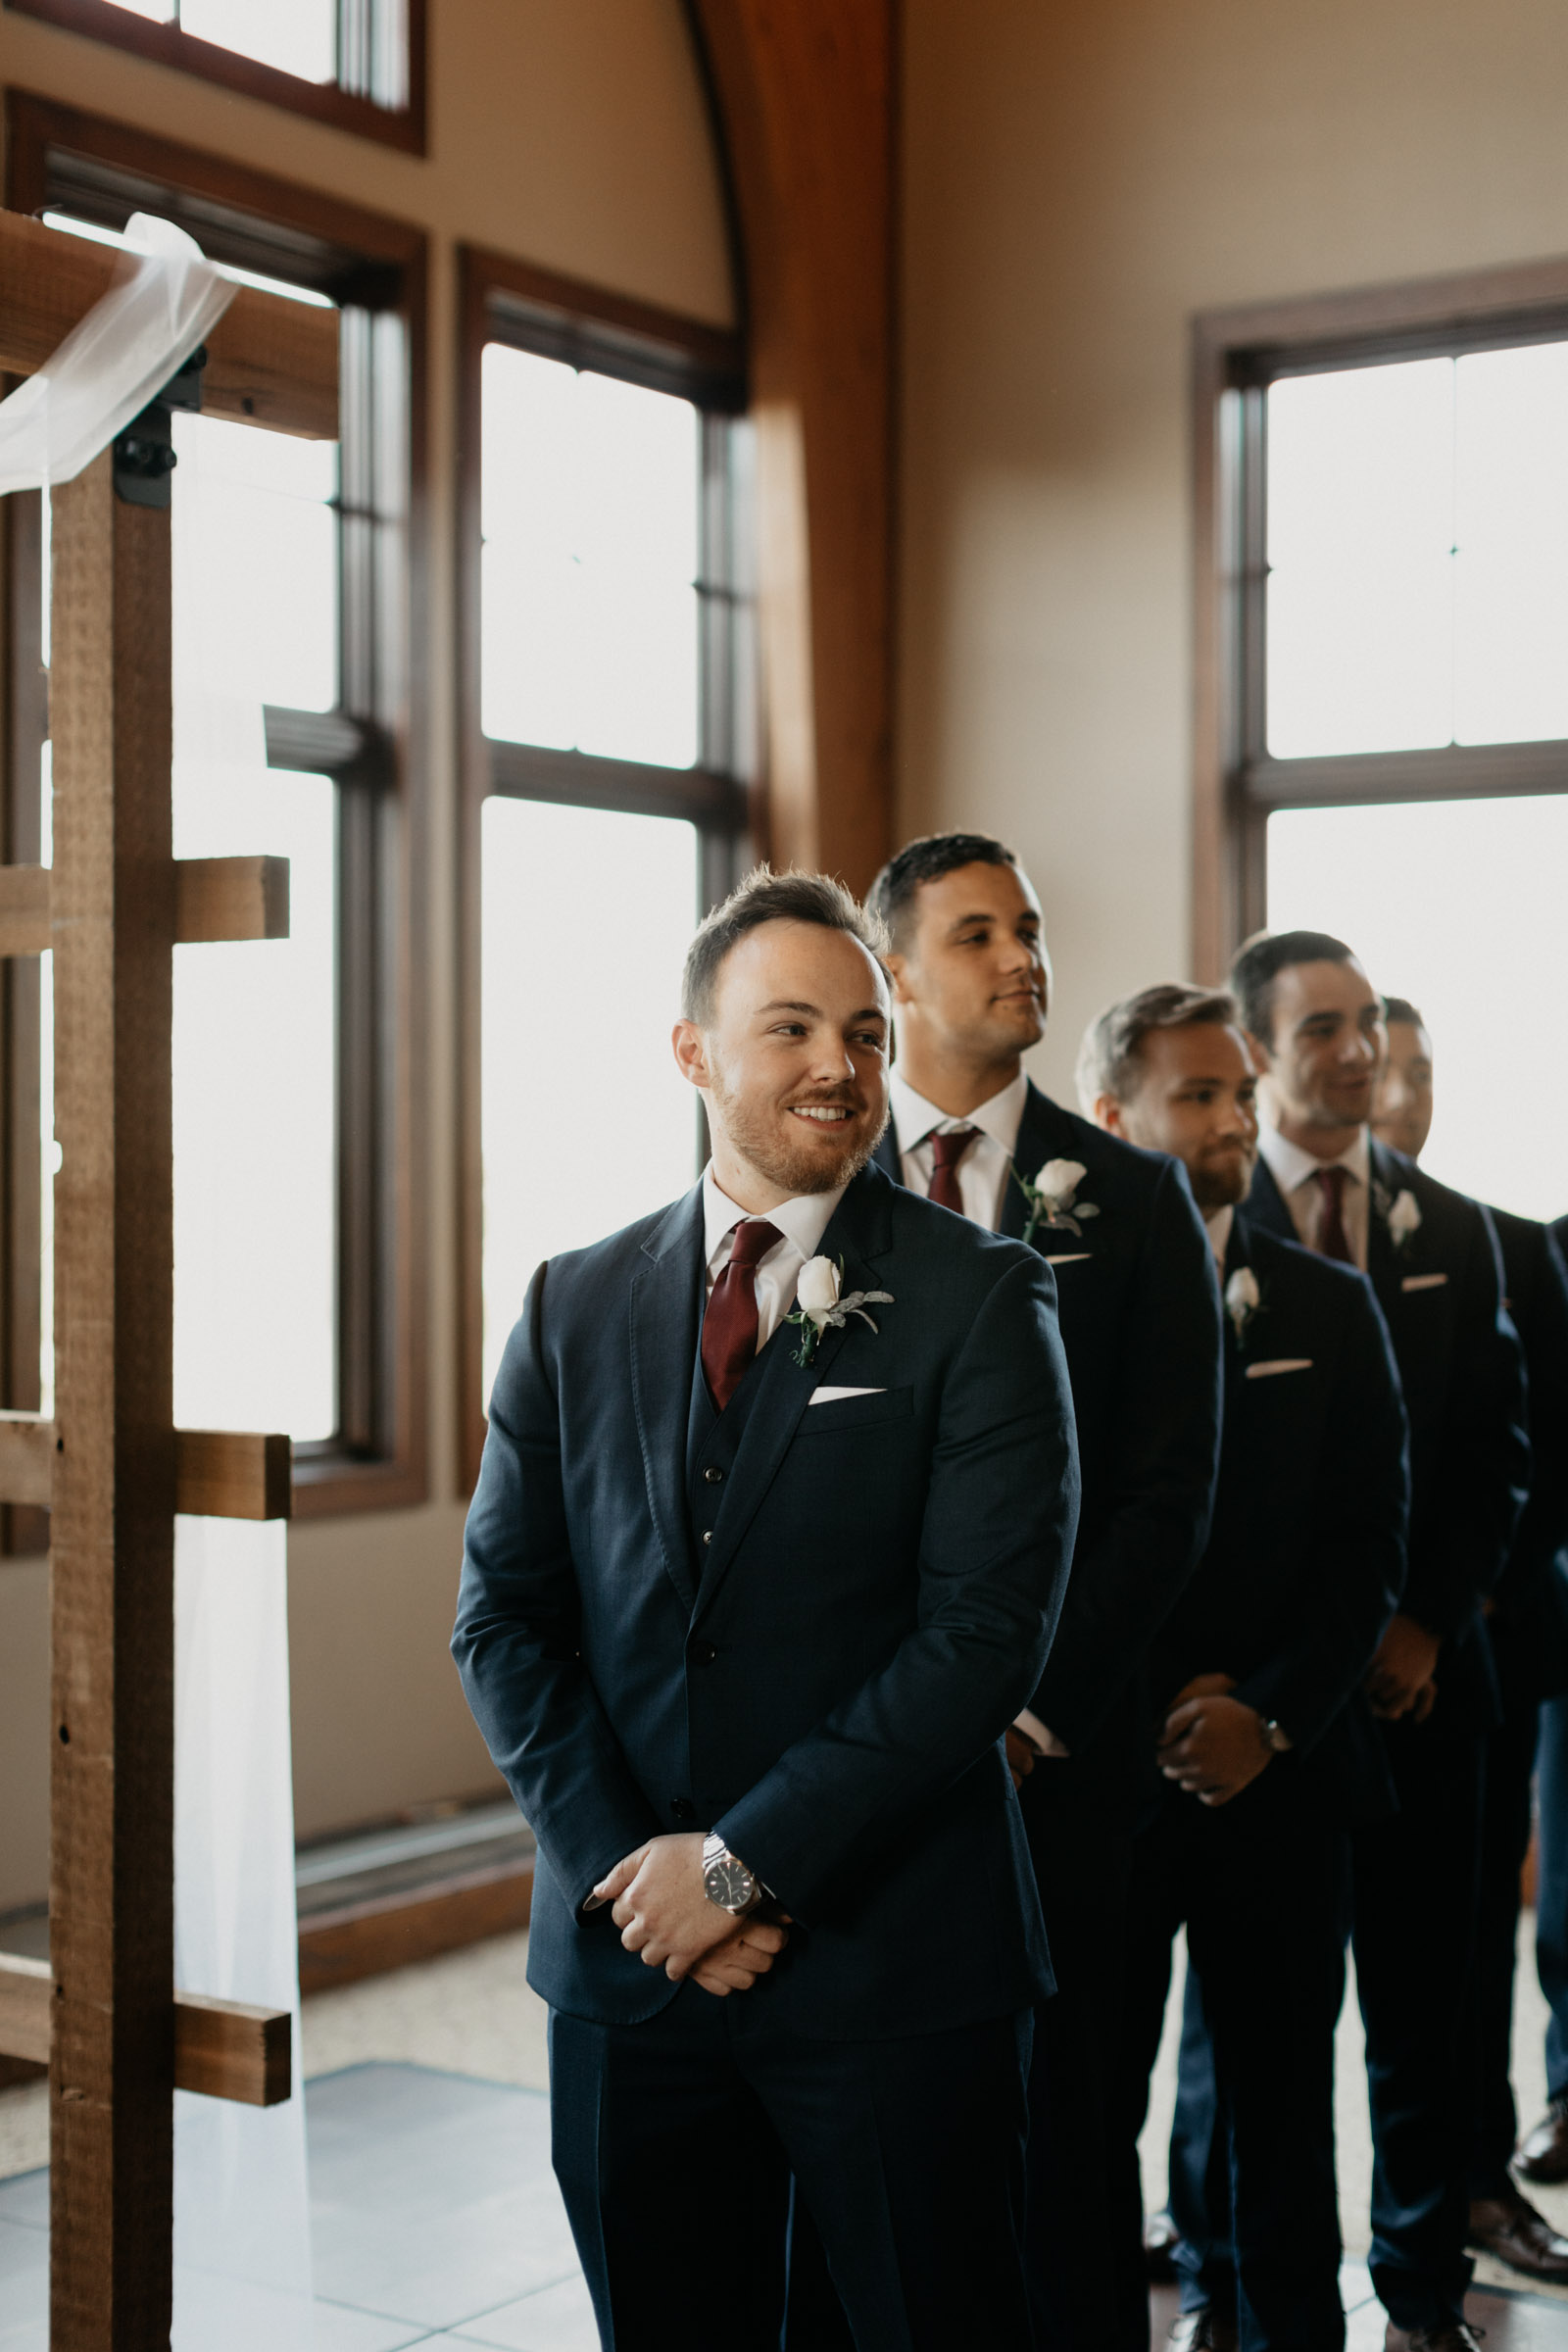 groom looking at his bride walking down the aisle on their wedding day